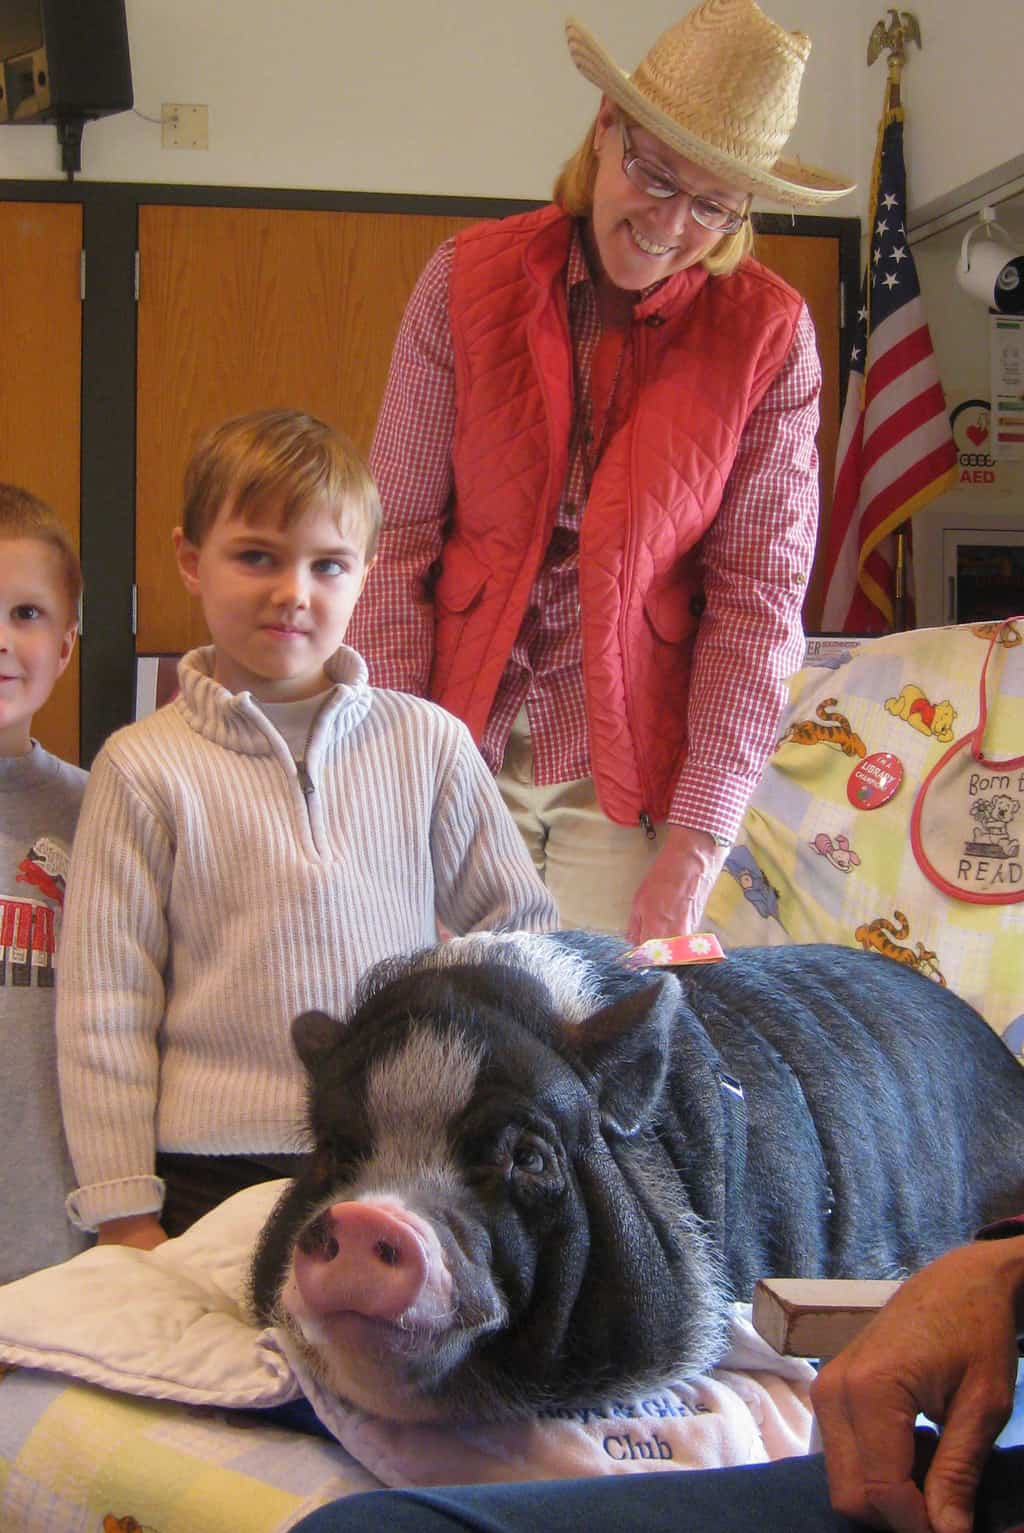 Chicken, Goats, and Co-Sleeping Pigs